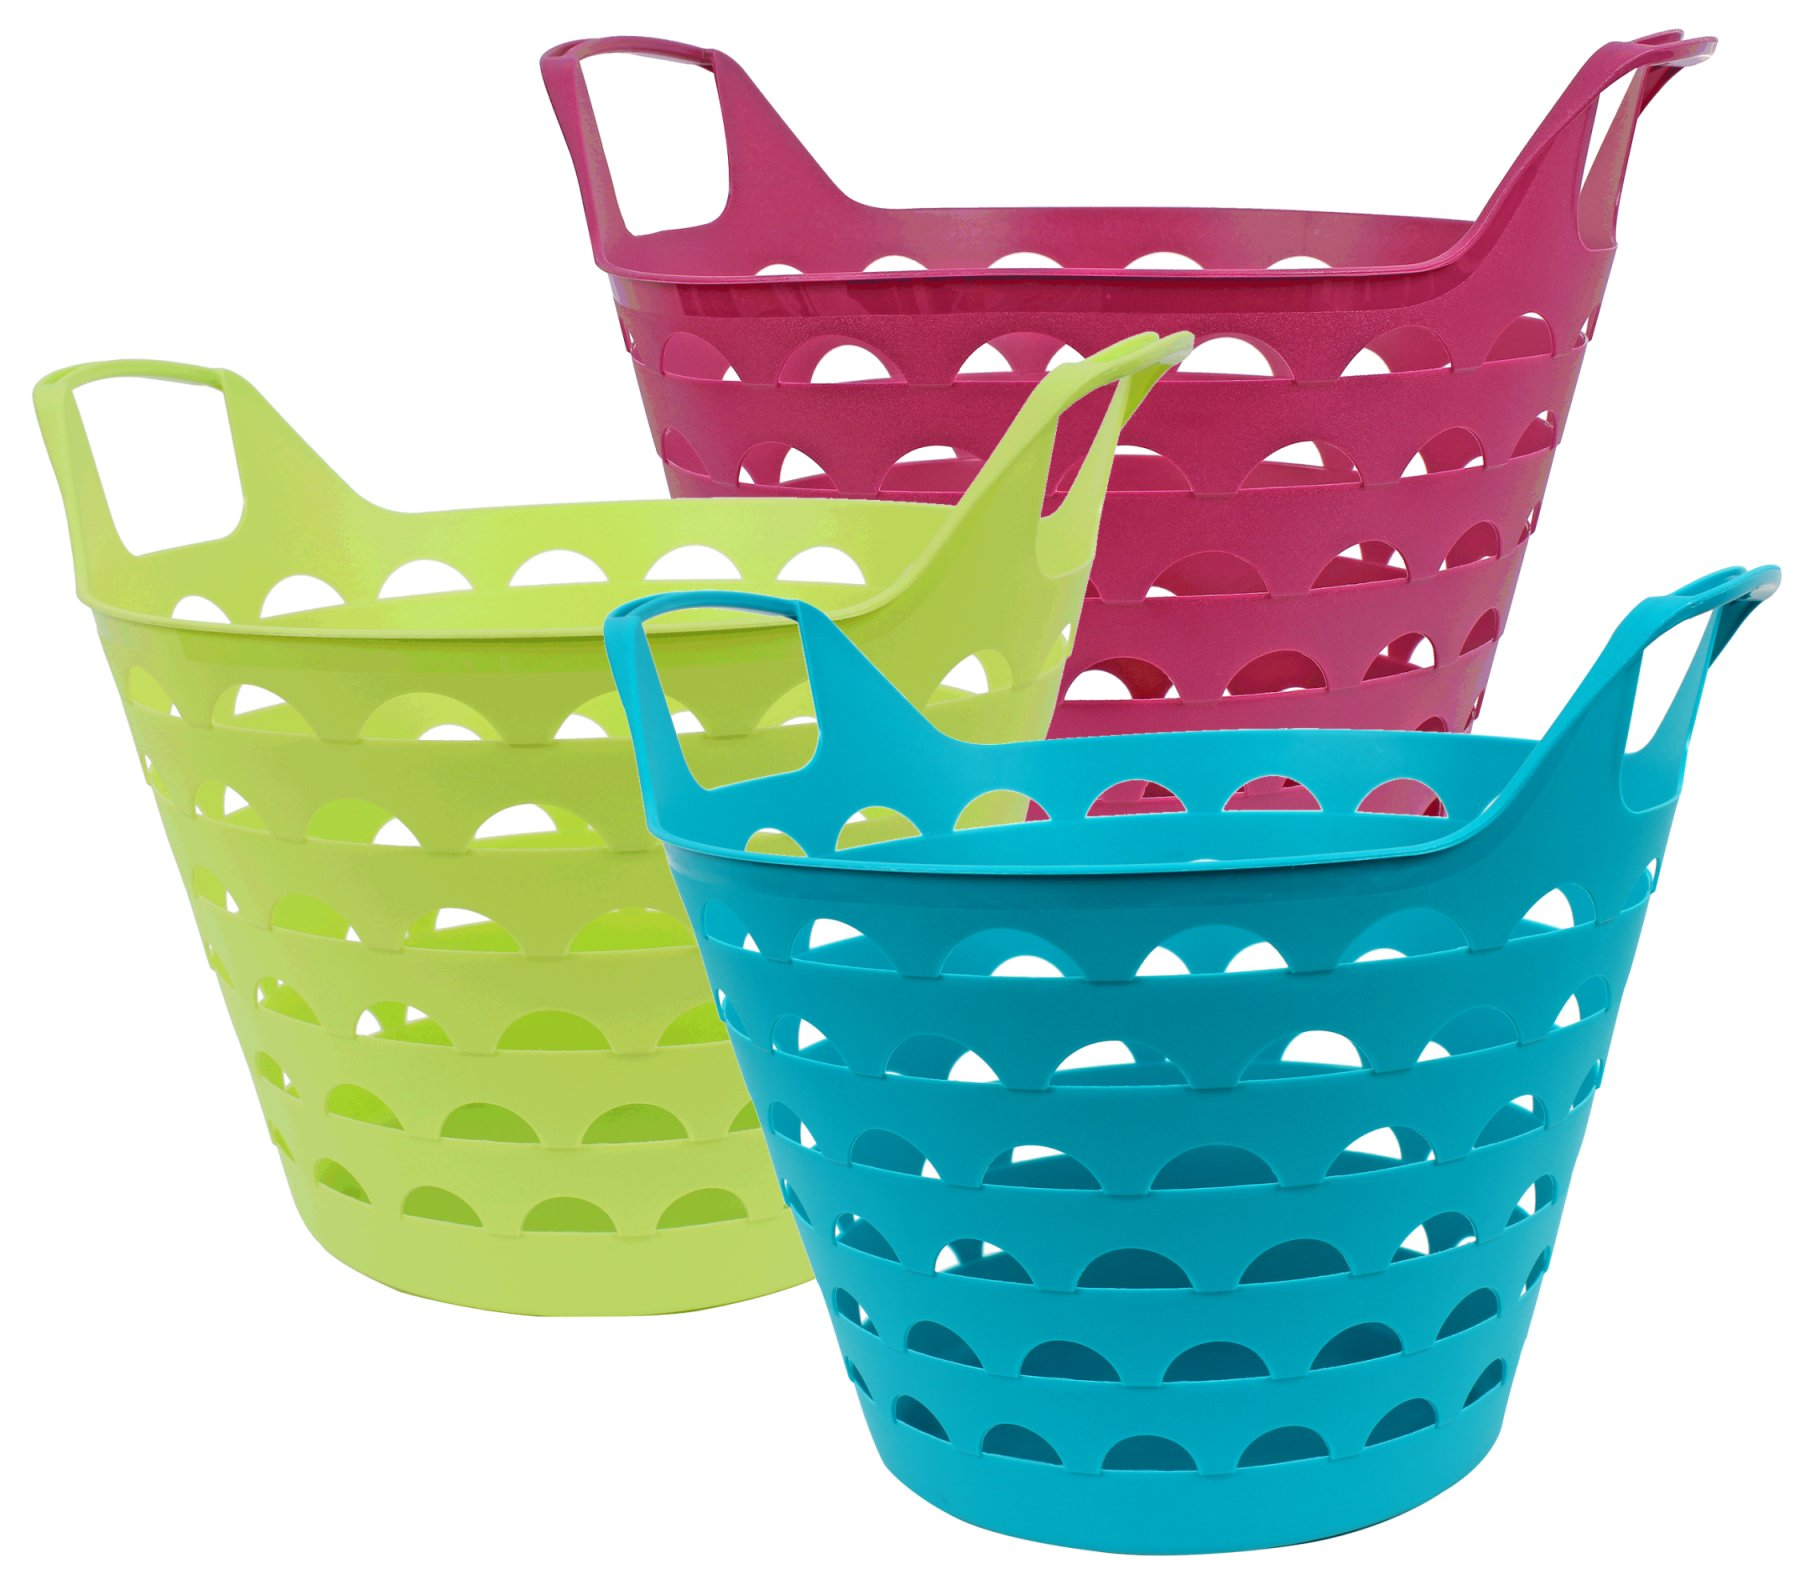 Flexi-Basket, 31 x<br> 40 x 34 cm, 14 L,<br>colored sort.